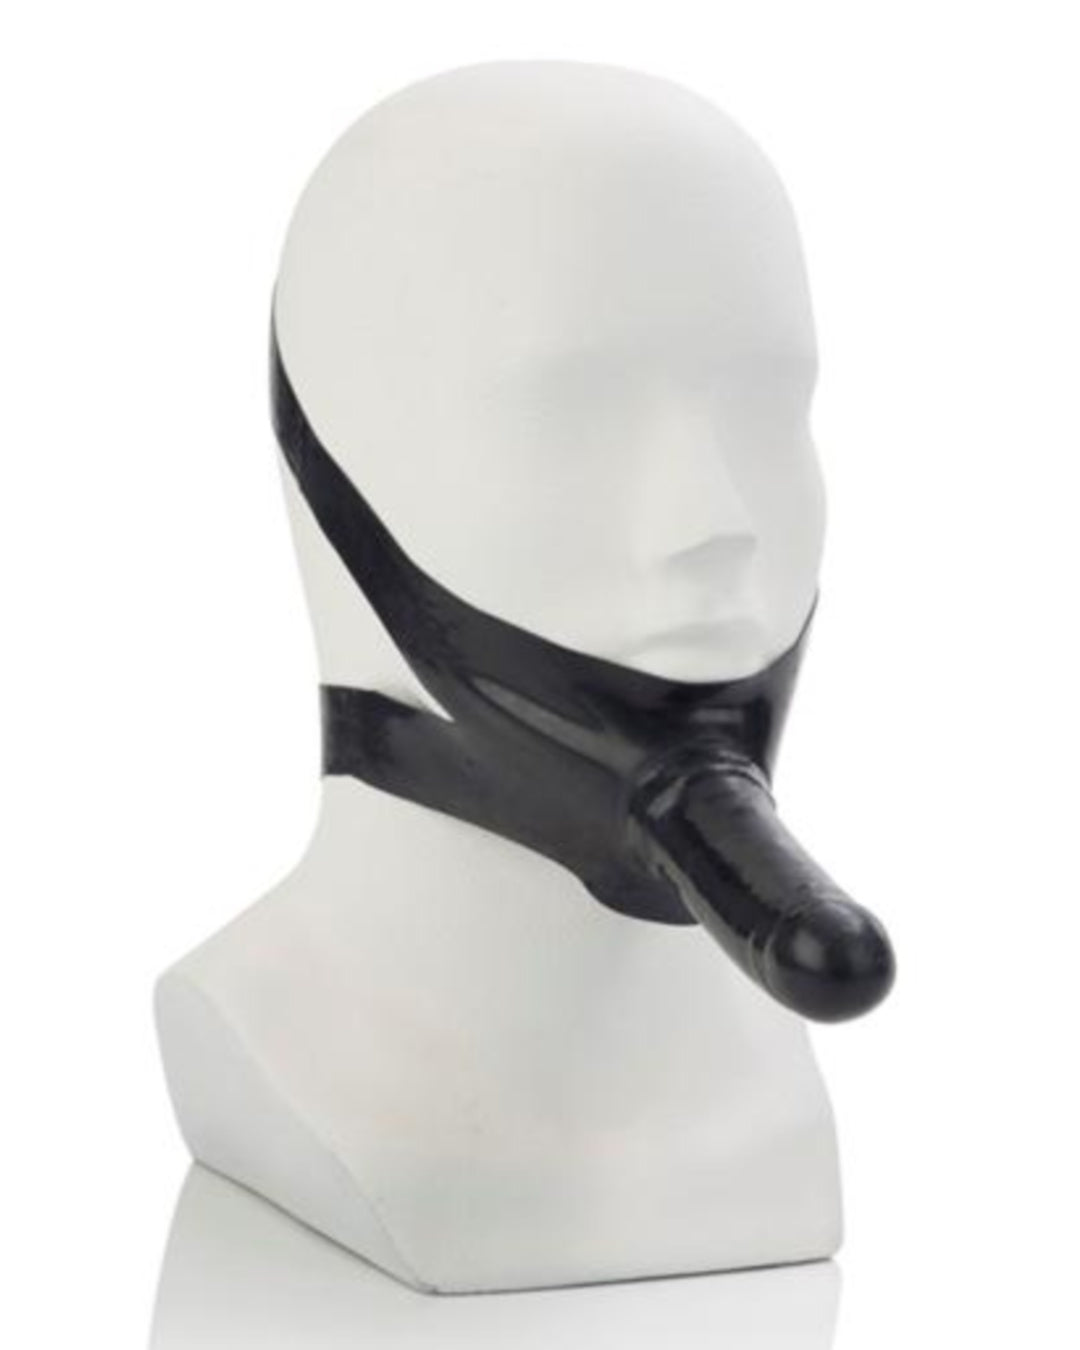 The Original Accommodator Latex Chin Strap Dildo - Black worn on a mannequin